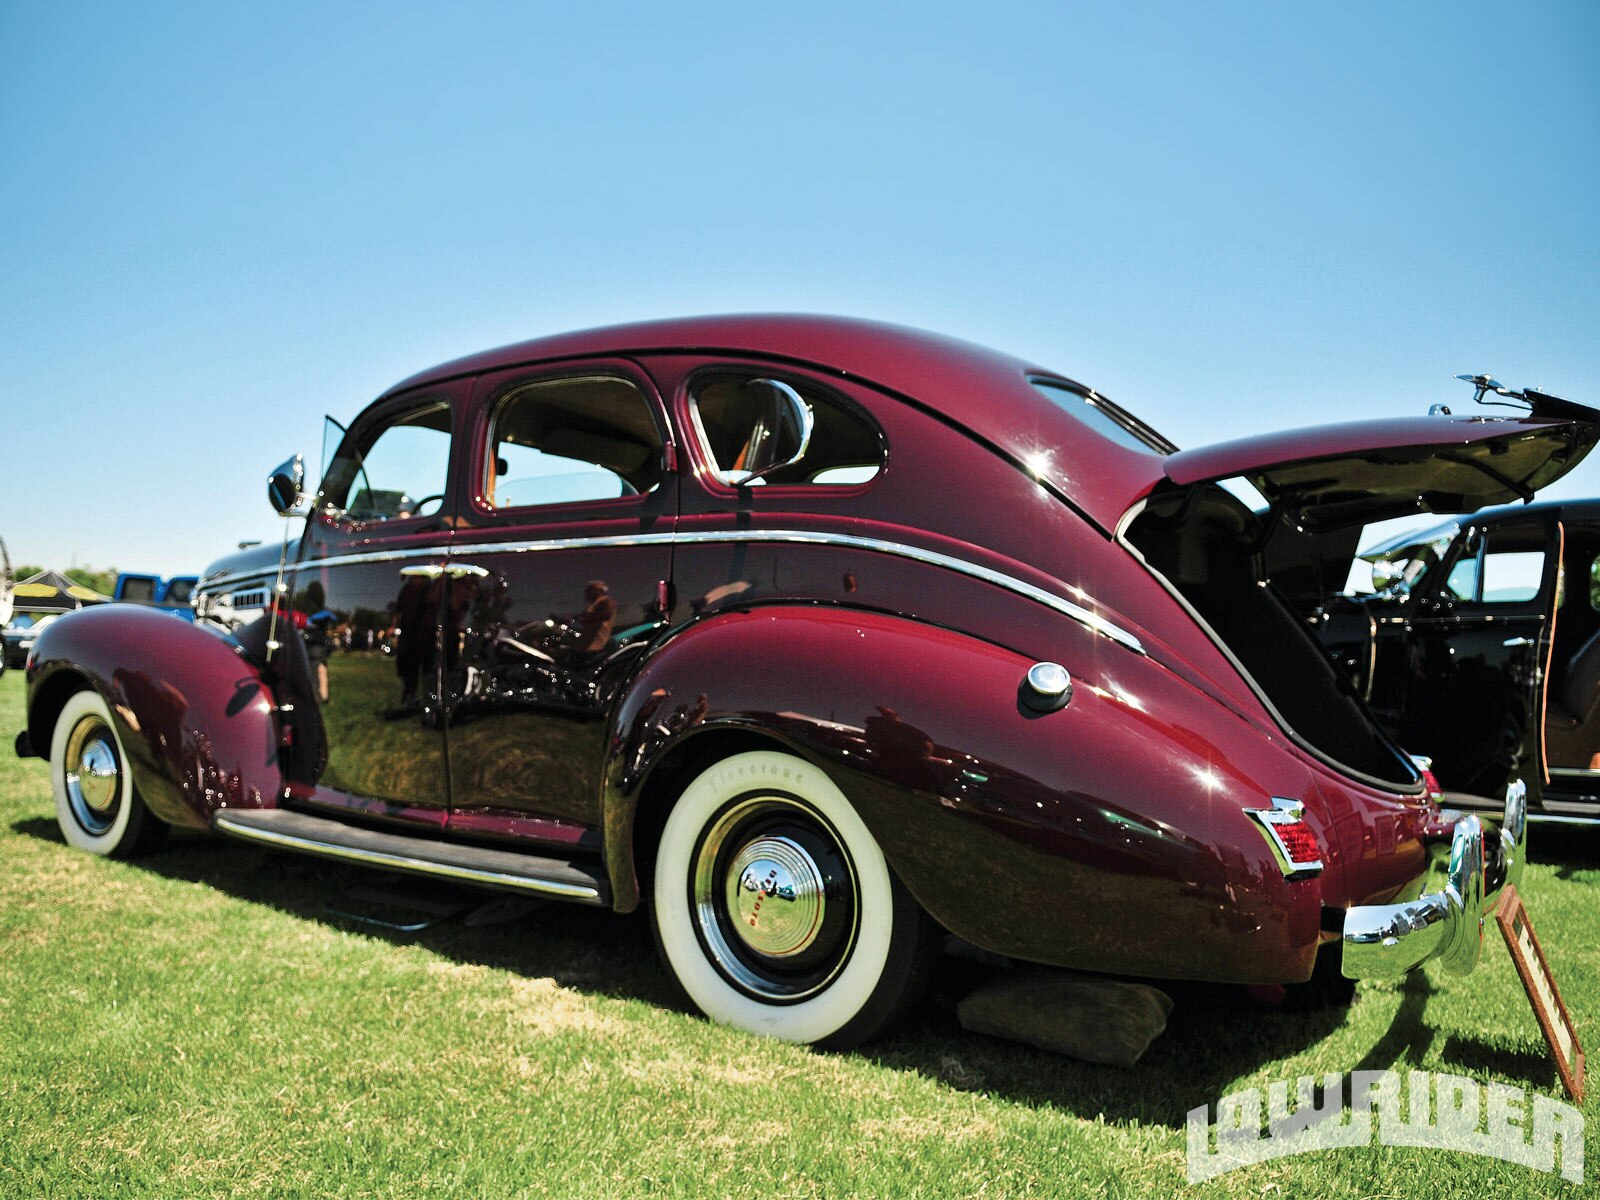 San Fernando Valley Car Show - Oldies Car Club - Lowrider Magazine